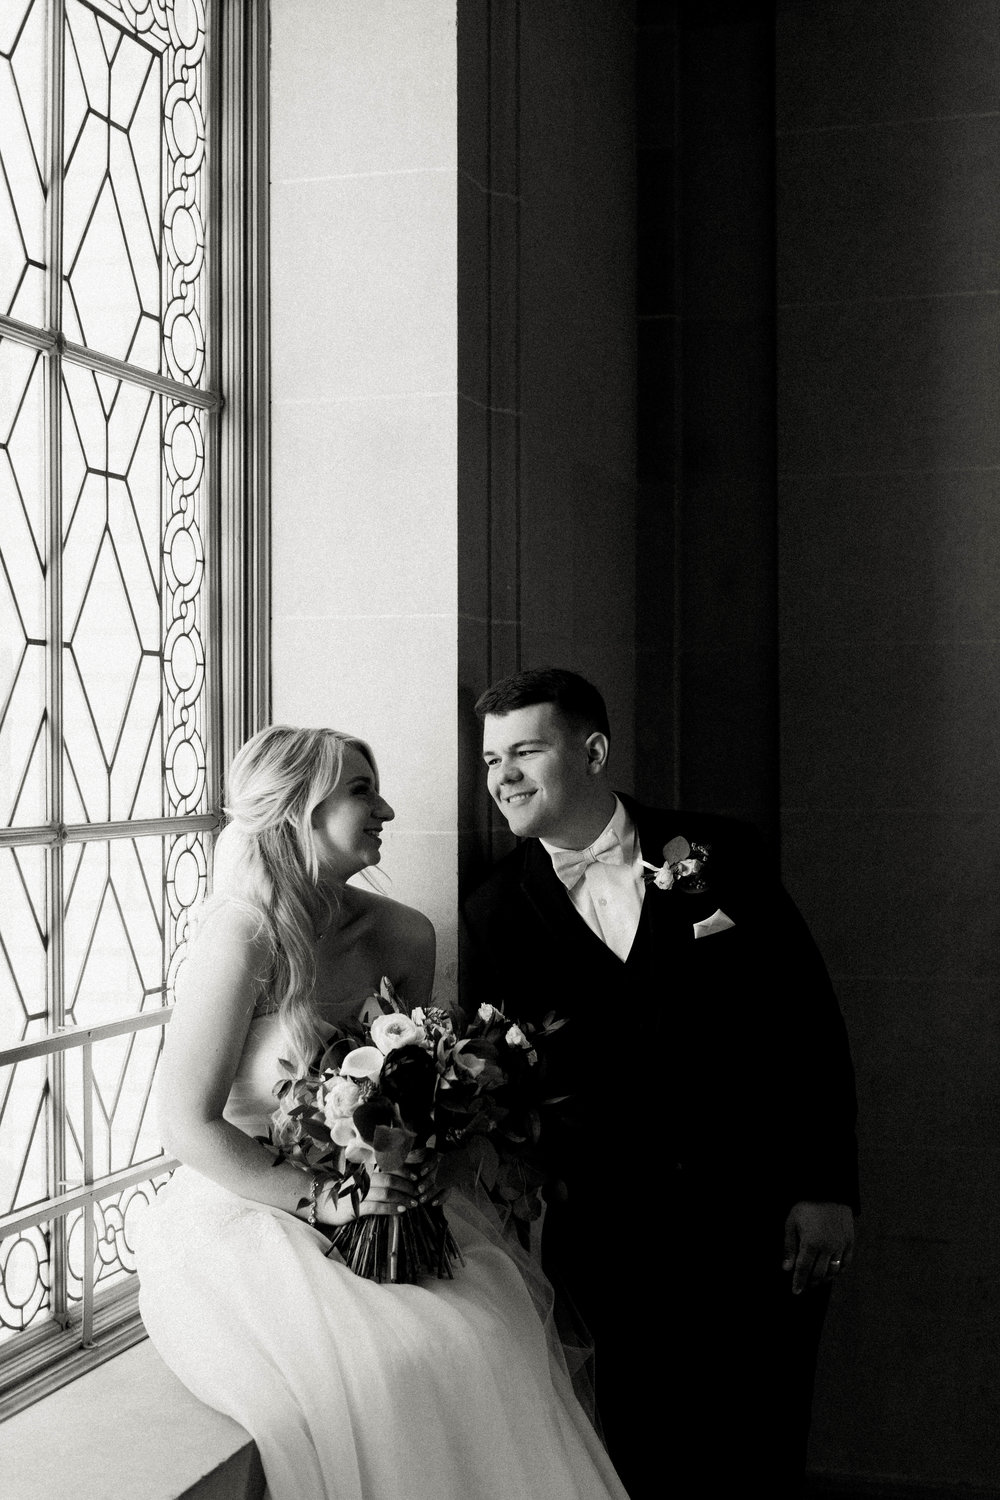 DennisRoyCoronel_Photography_SanFranciscoCityHall_Wedding-72.jpg